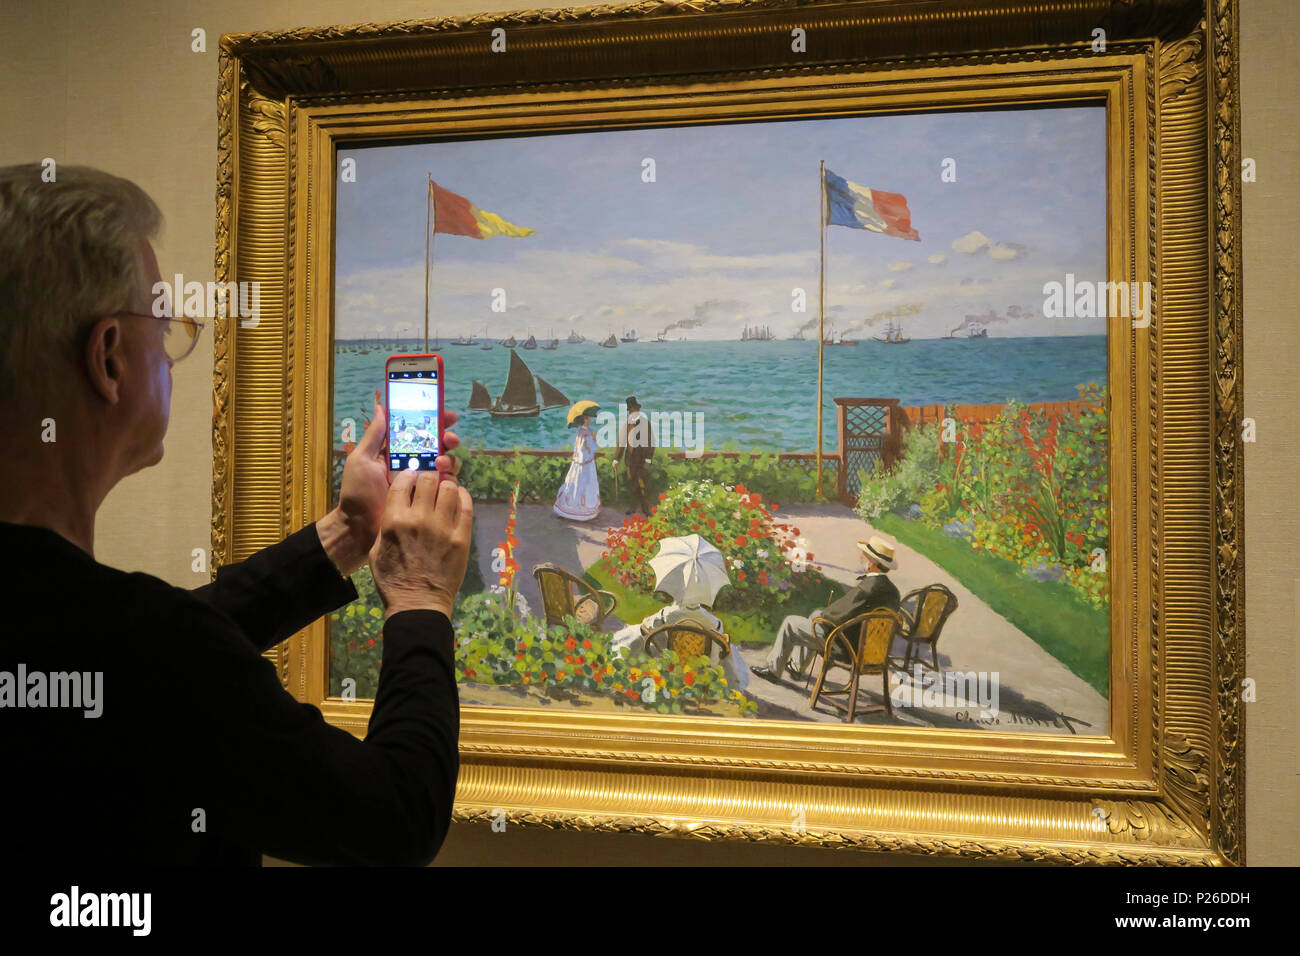 'Public Parks, Private Gardens: Paris to Provence' Exhibit at the Metropolitan Museum of Art, NYC, USA - Stock Image